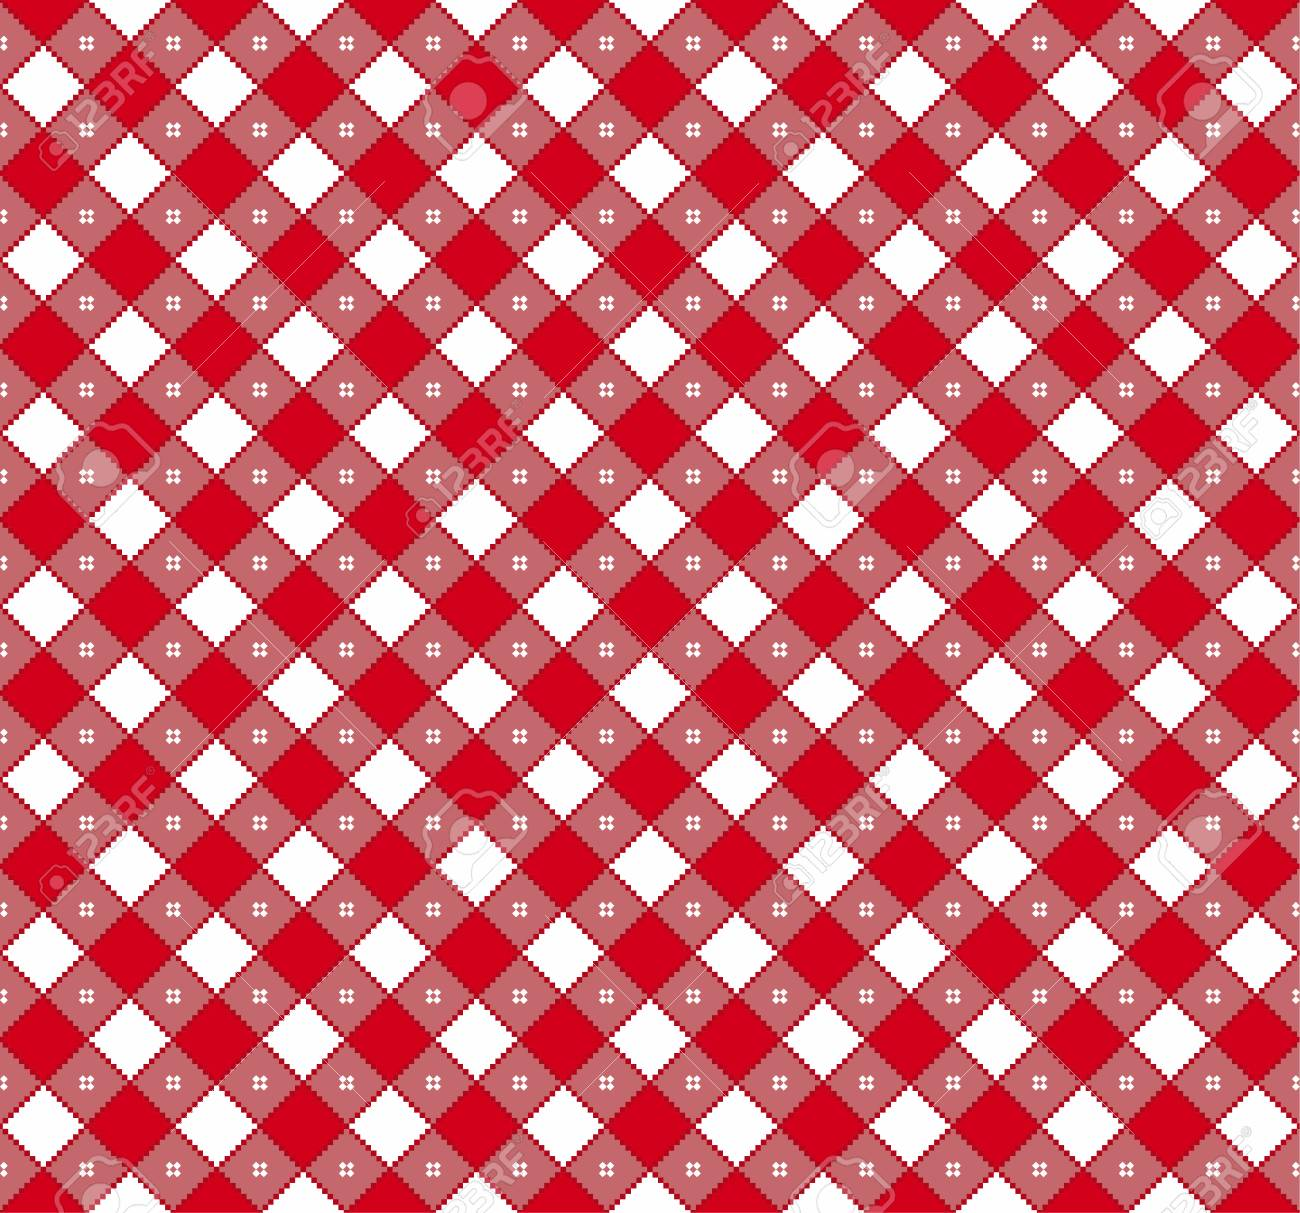 Gingham And Buffalo Check Plaid Pattern. Tablecloth, Fabric Texture, Stamp  For Apparel,